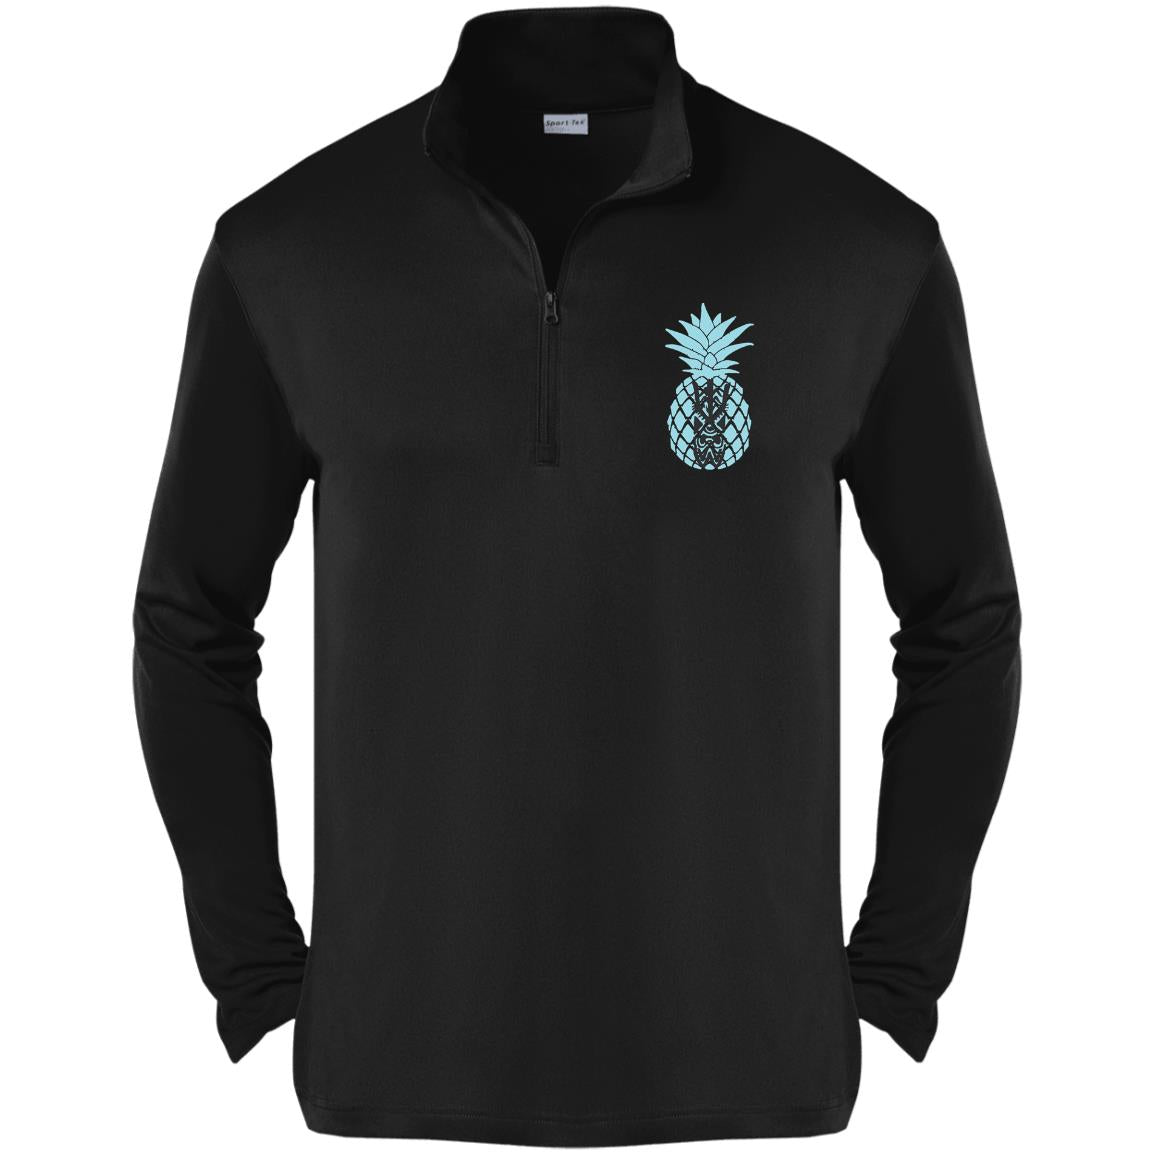 Tiki Pineapple 1/4-Zip Pullover - Baby Blue